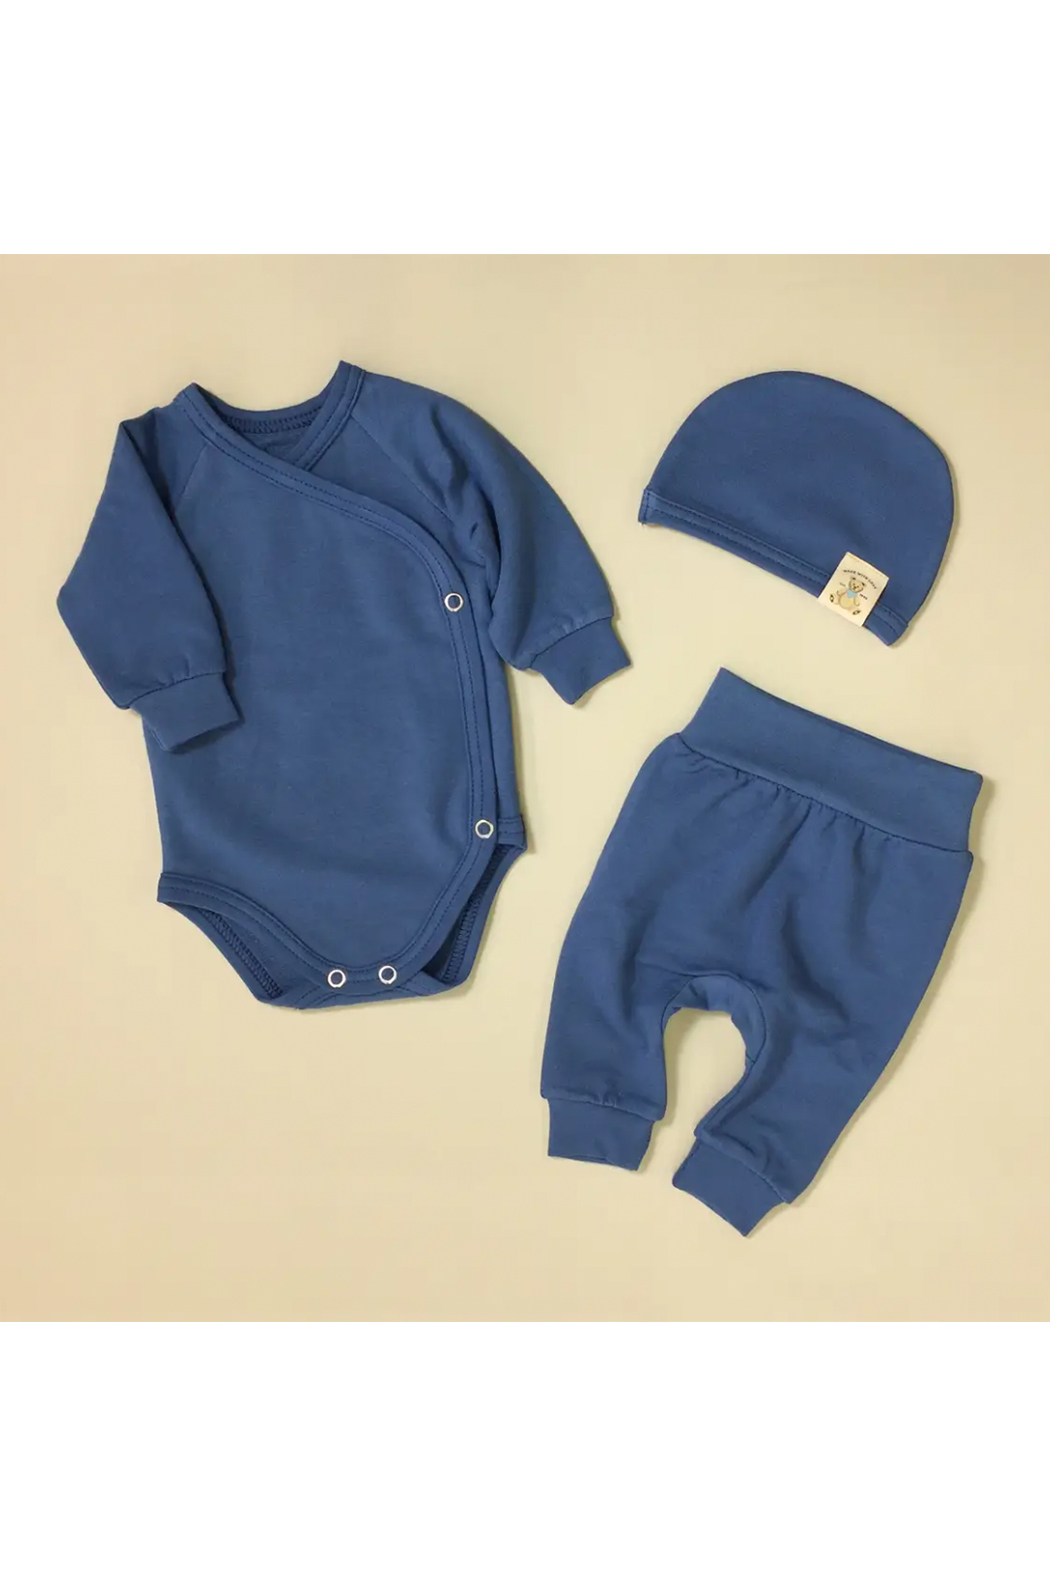 Itty Bitty Baby Bamboo Layette Set 1 Month Size (5-8 lbs) - Front Cropped Image